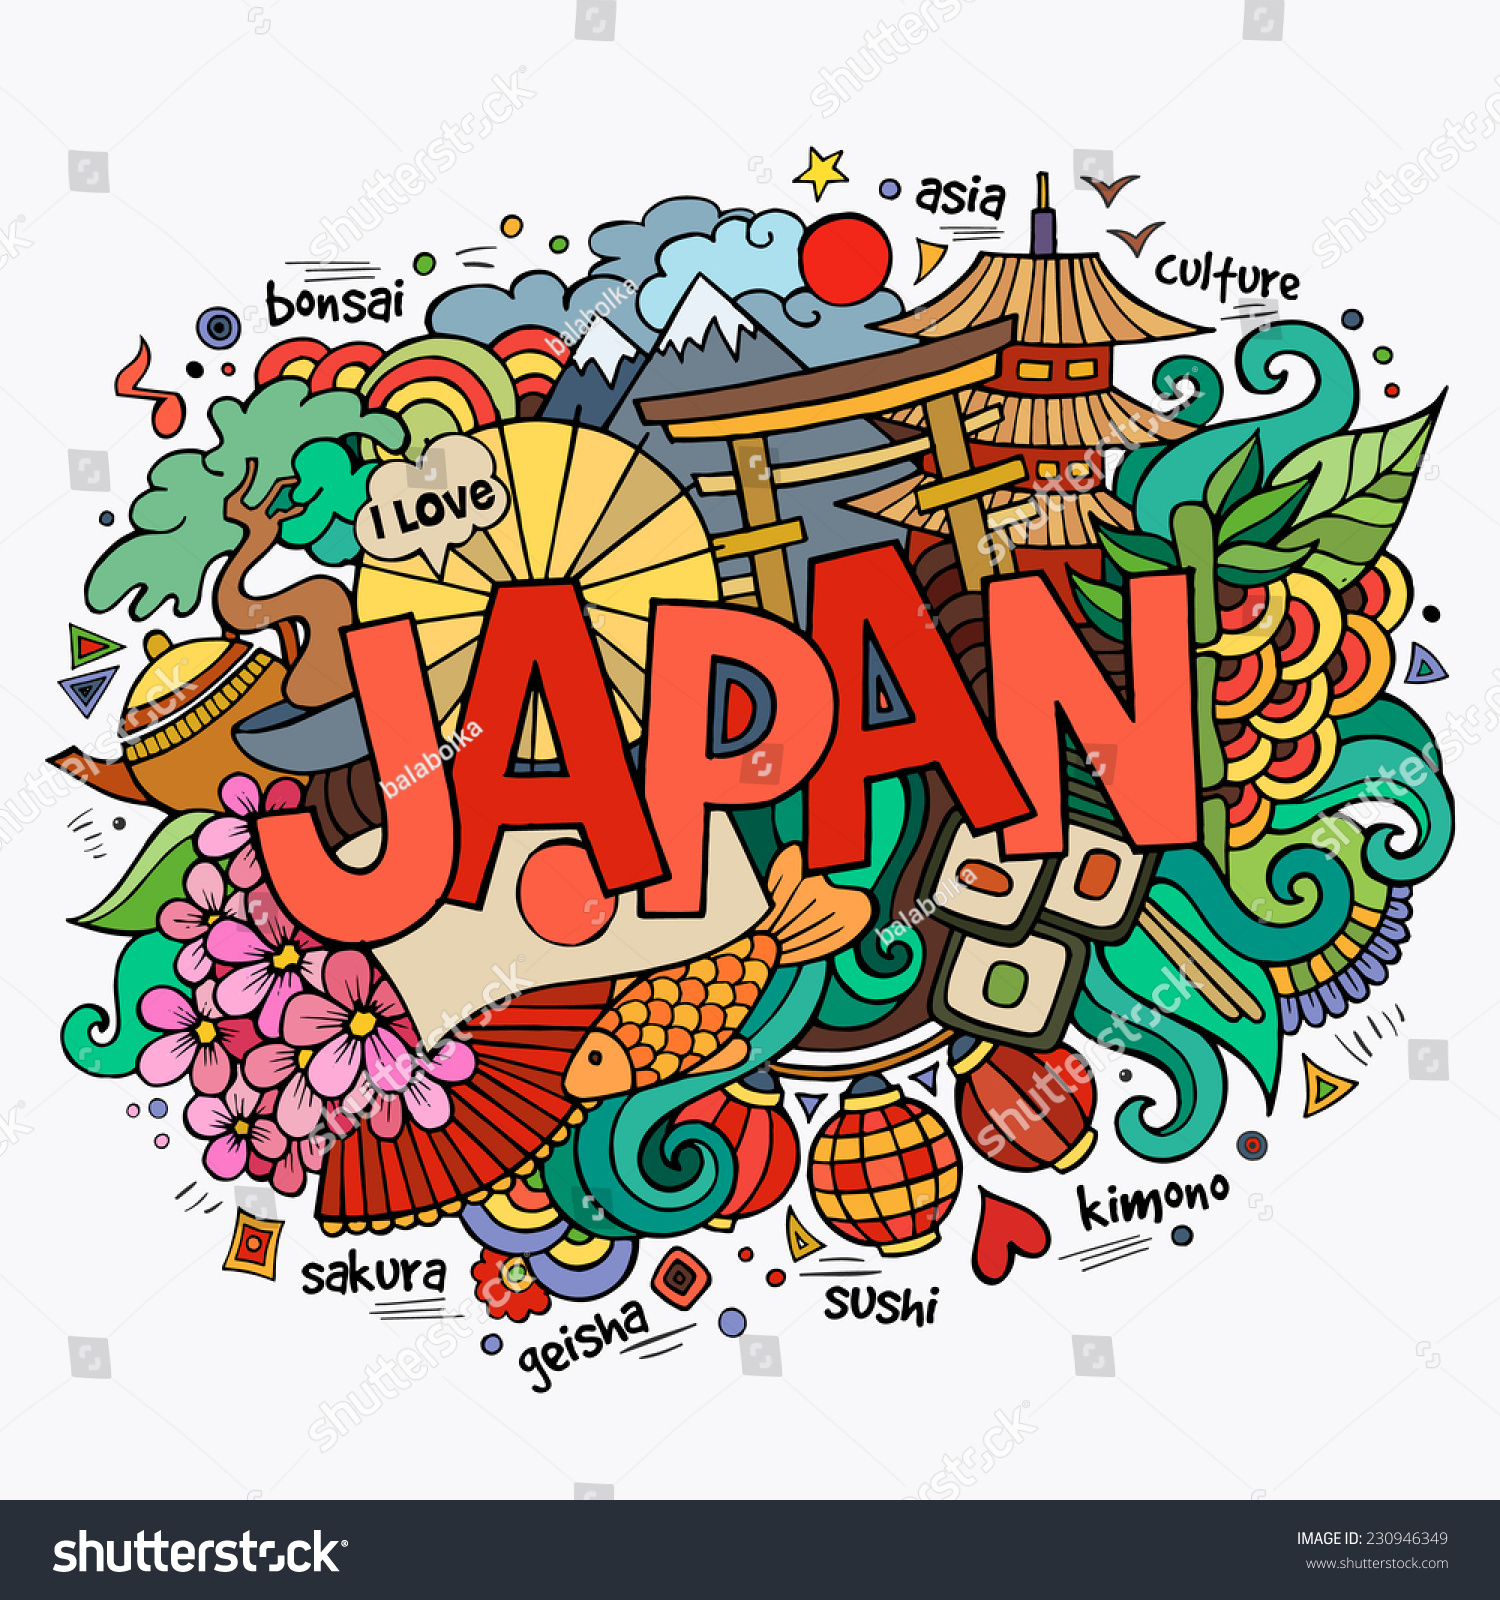 Stock vector music hand lettering and doodles elements - Japan Hand Lettering And Doodles Elements Background Vector Illustration